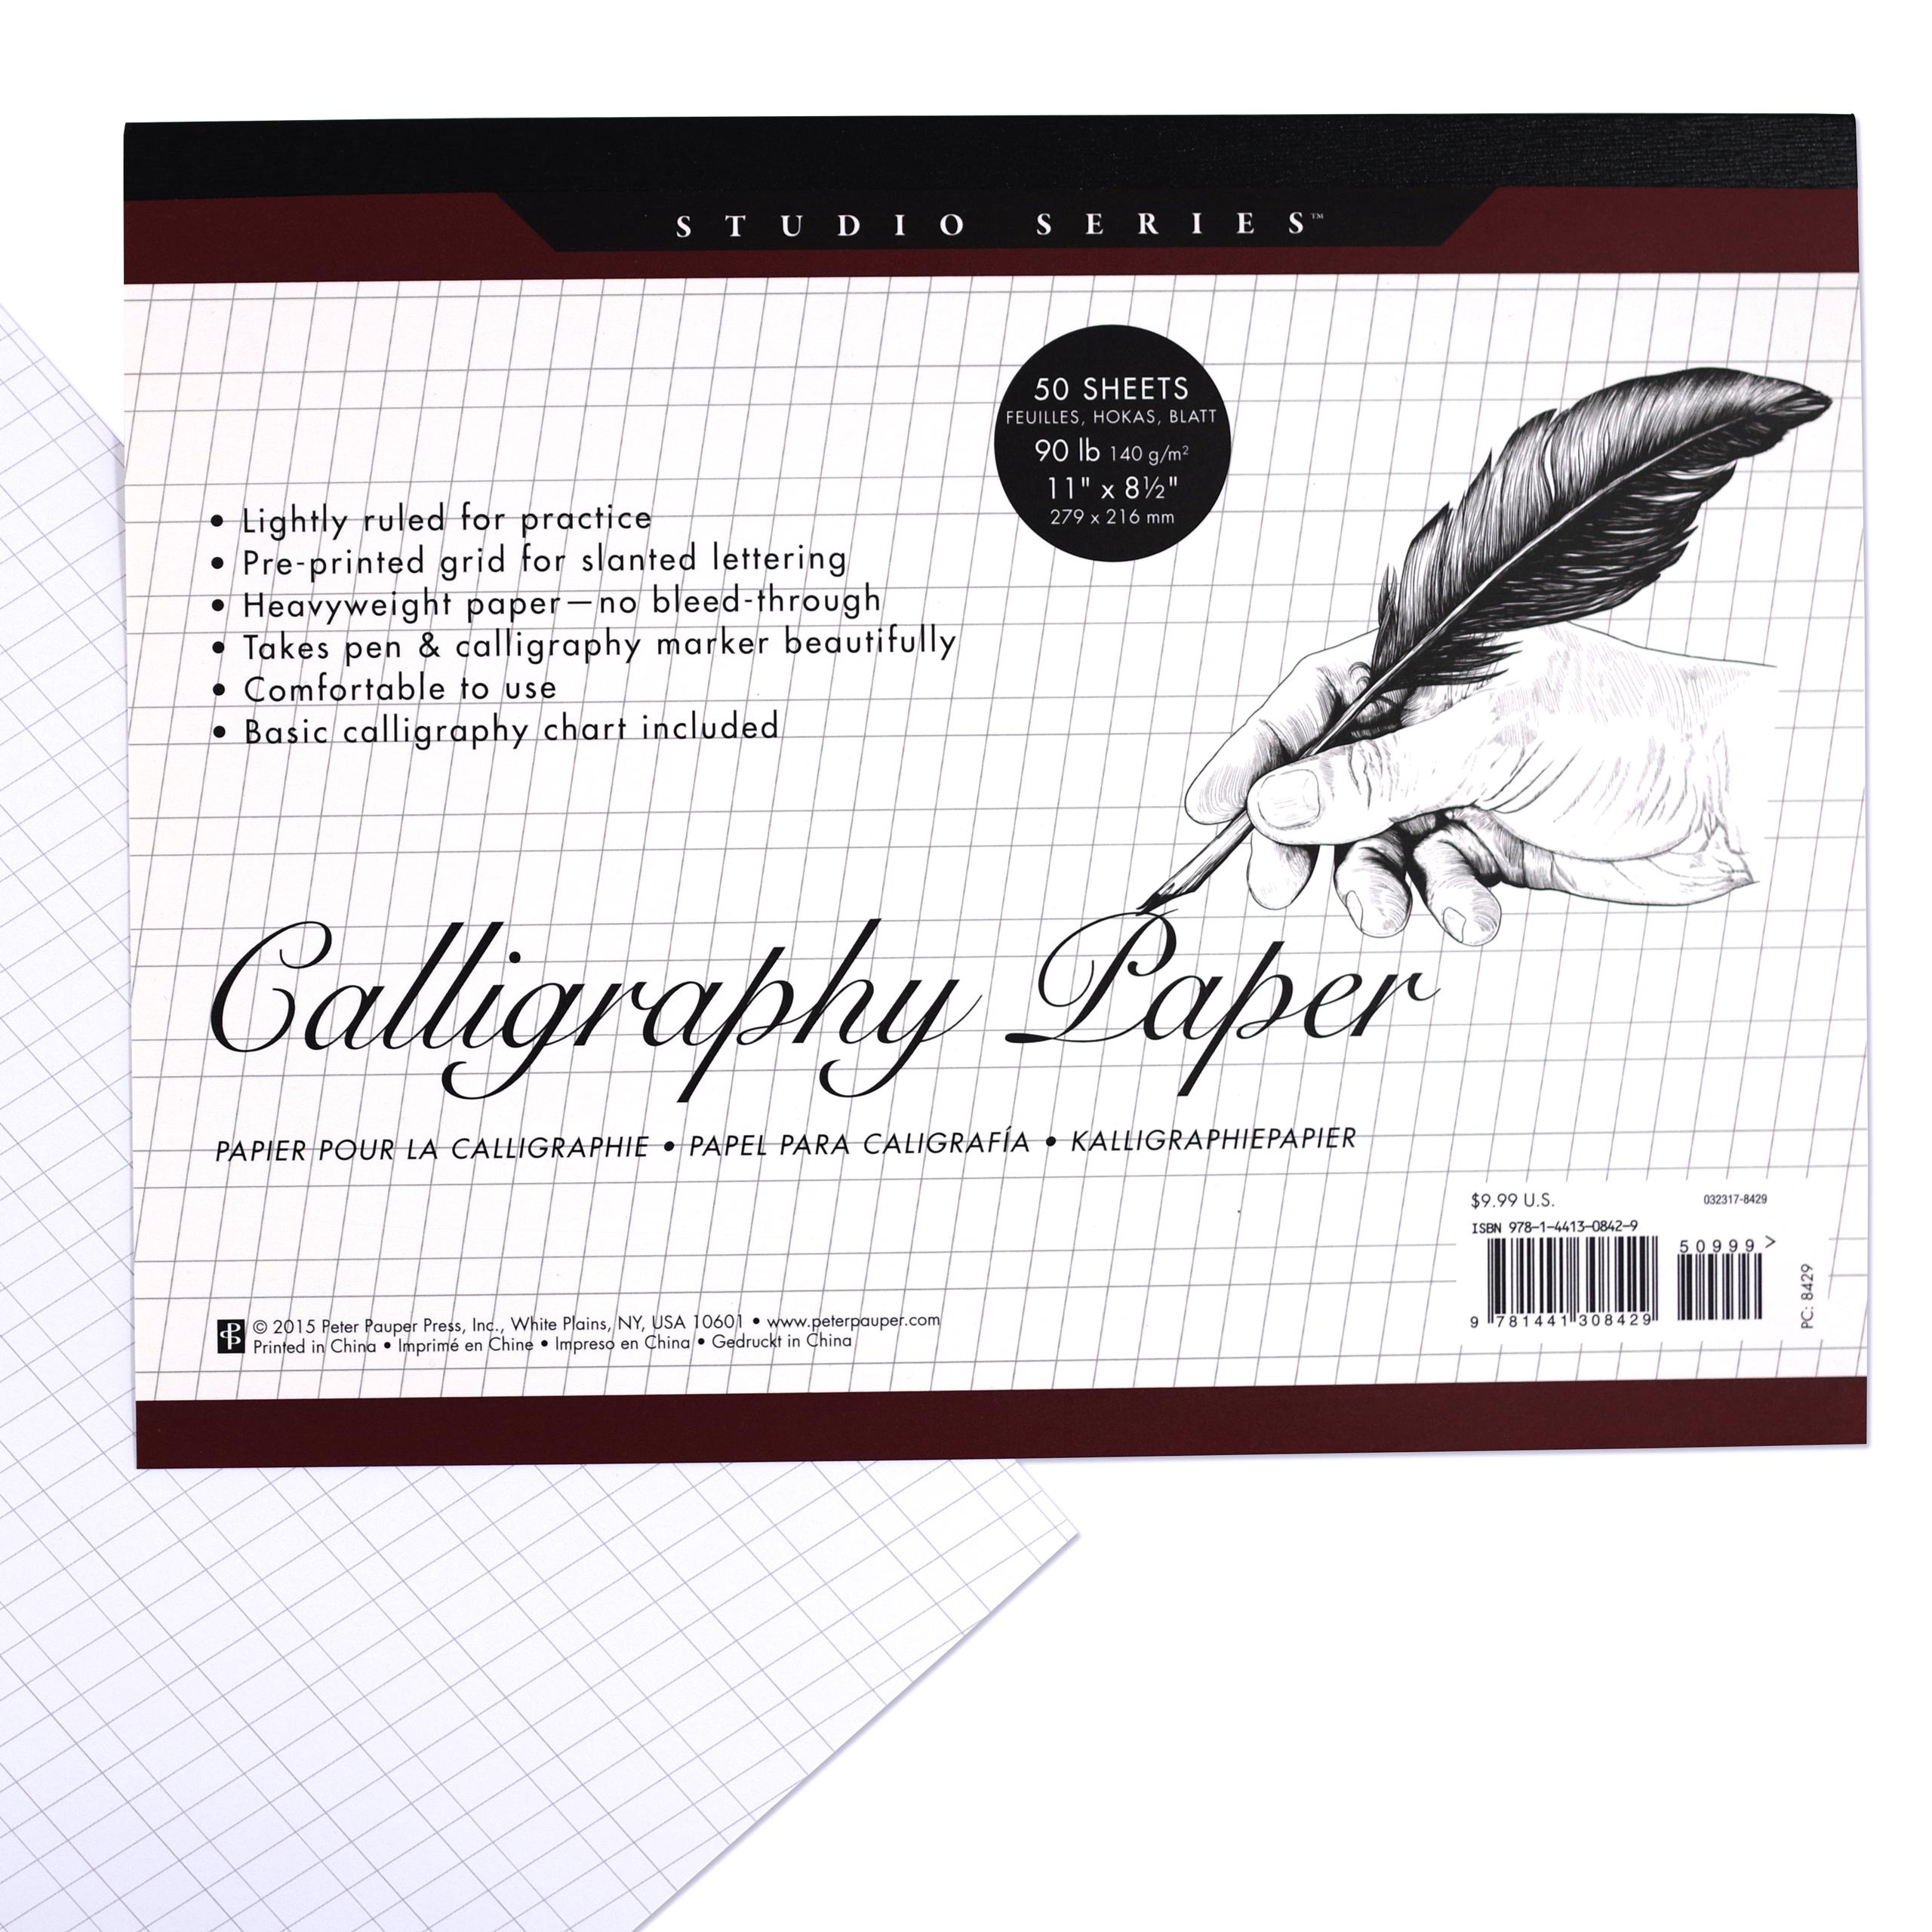 studio series calligraphy paper pad set of 50 heavyweight sheets